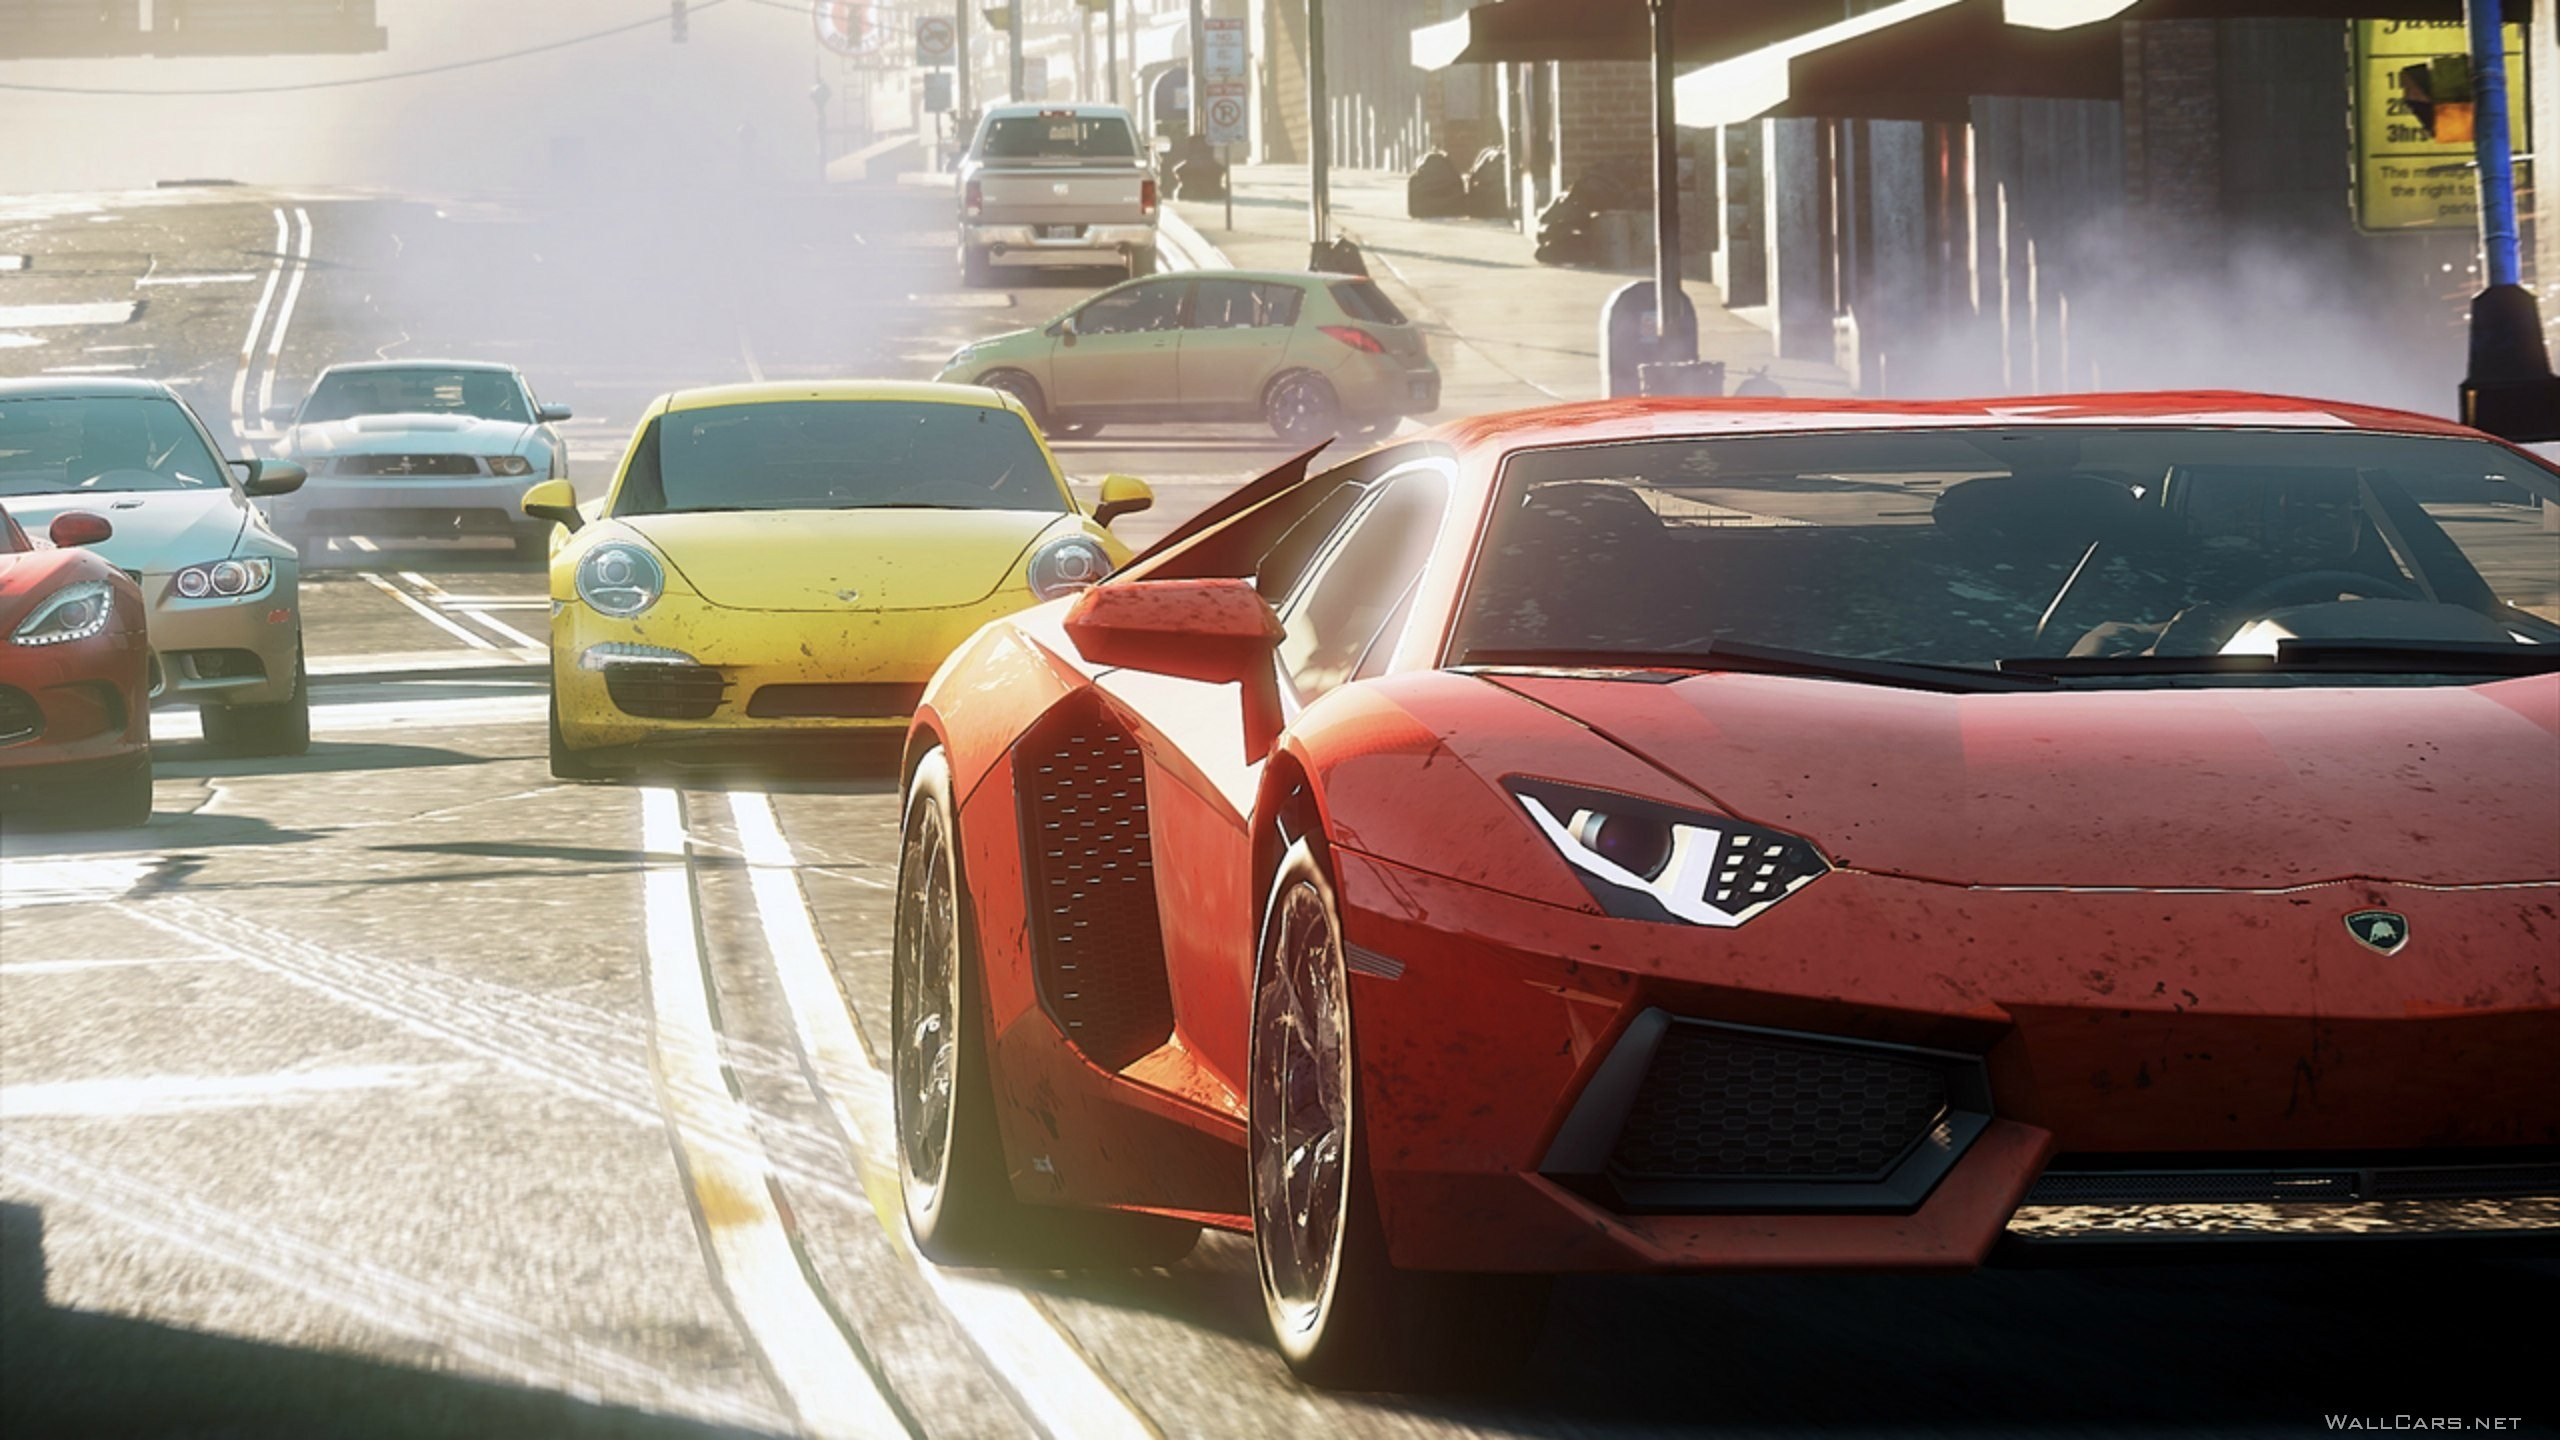 Красный Lamborghini Aventador, Need for Speed, NFS Most Wanted, Porsche, Dodge, BMW, Ford